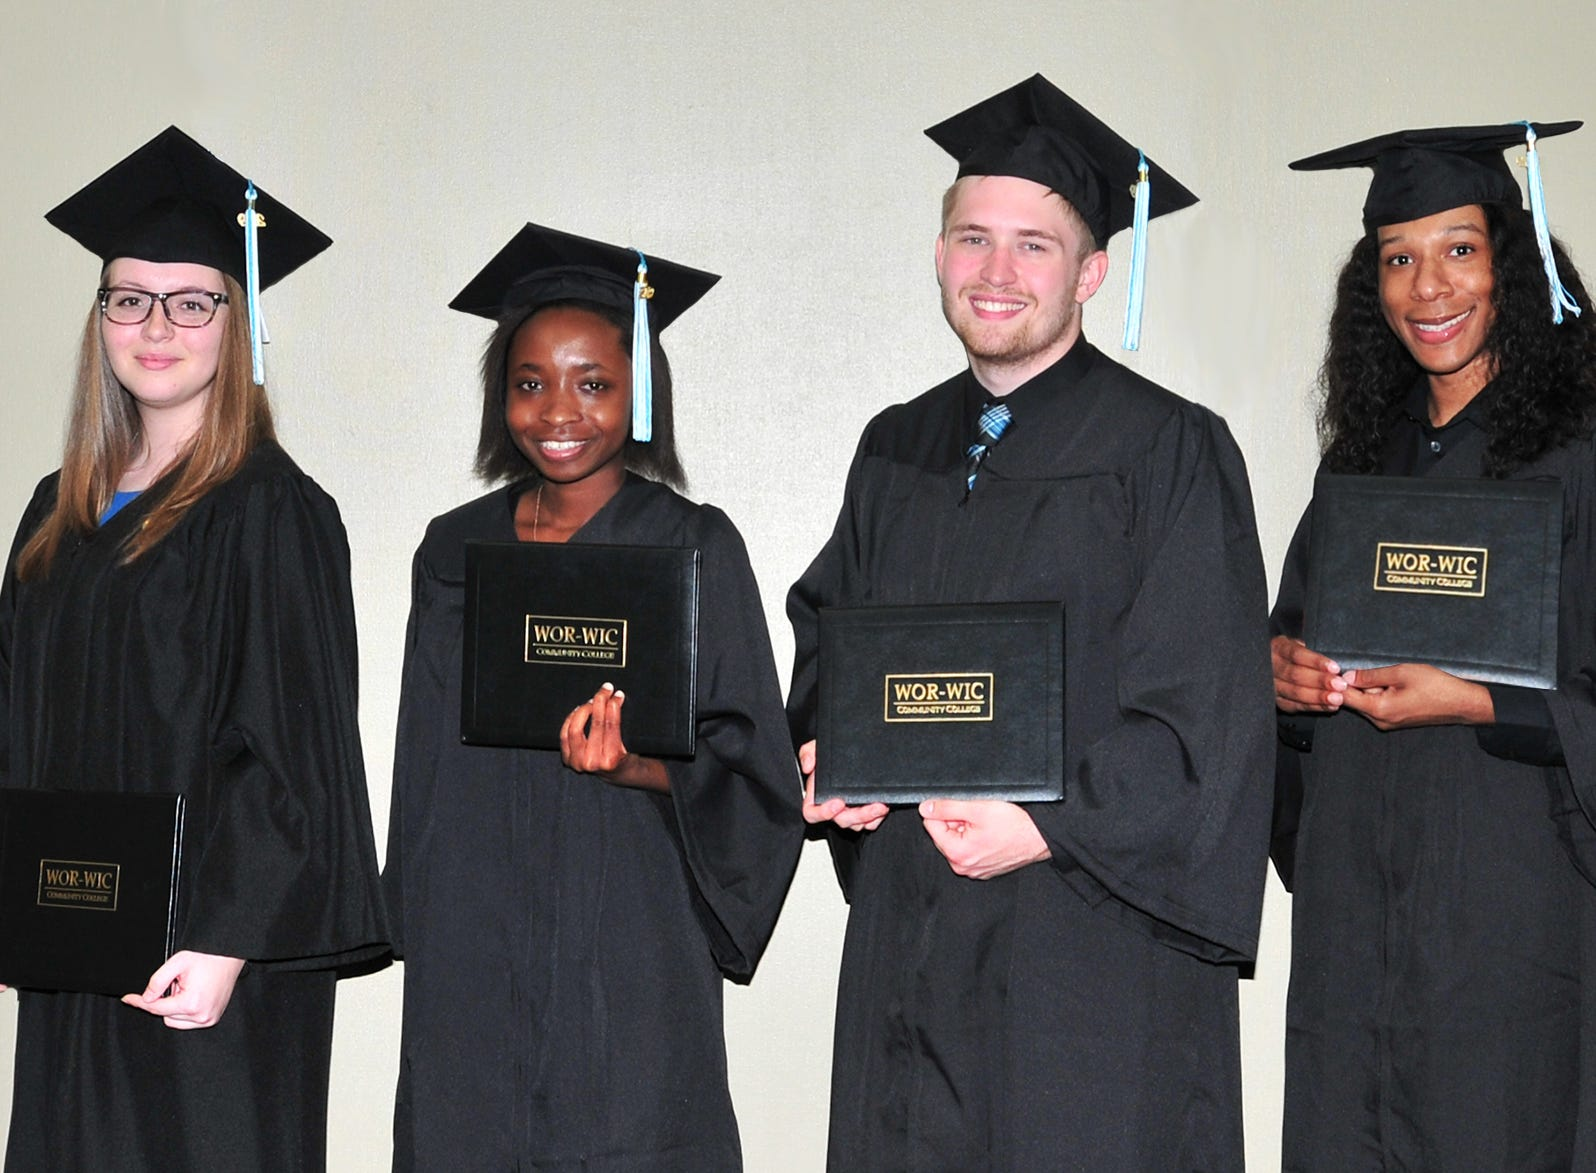 Del. Sheree Sample-Hughes, D-37A, of Salisbury, congratulates some of the graduates who received their associate degrees at Wor-Wic Community College. From left, next to Sample-Hughes, are Brooke Thomas, Jasmine Goslee, Cory Davis and James Crumpler.